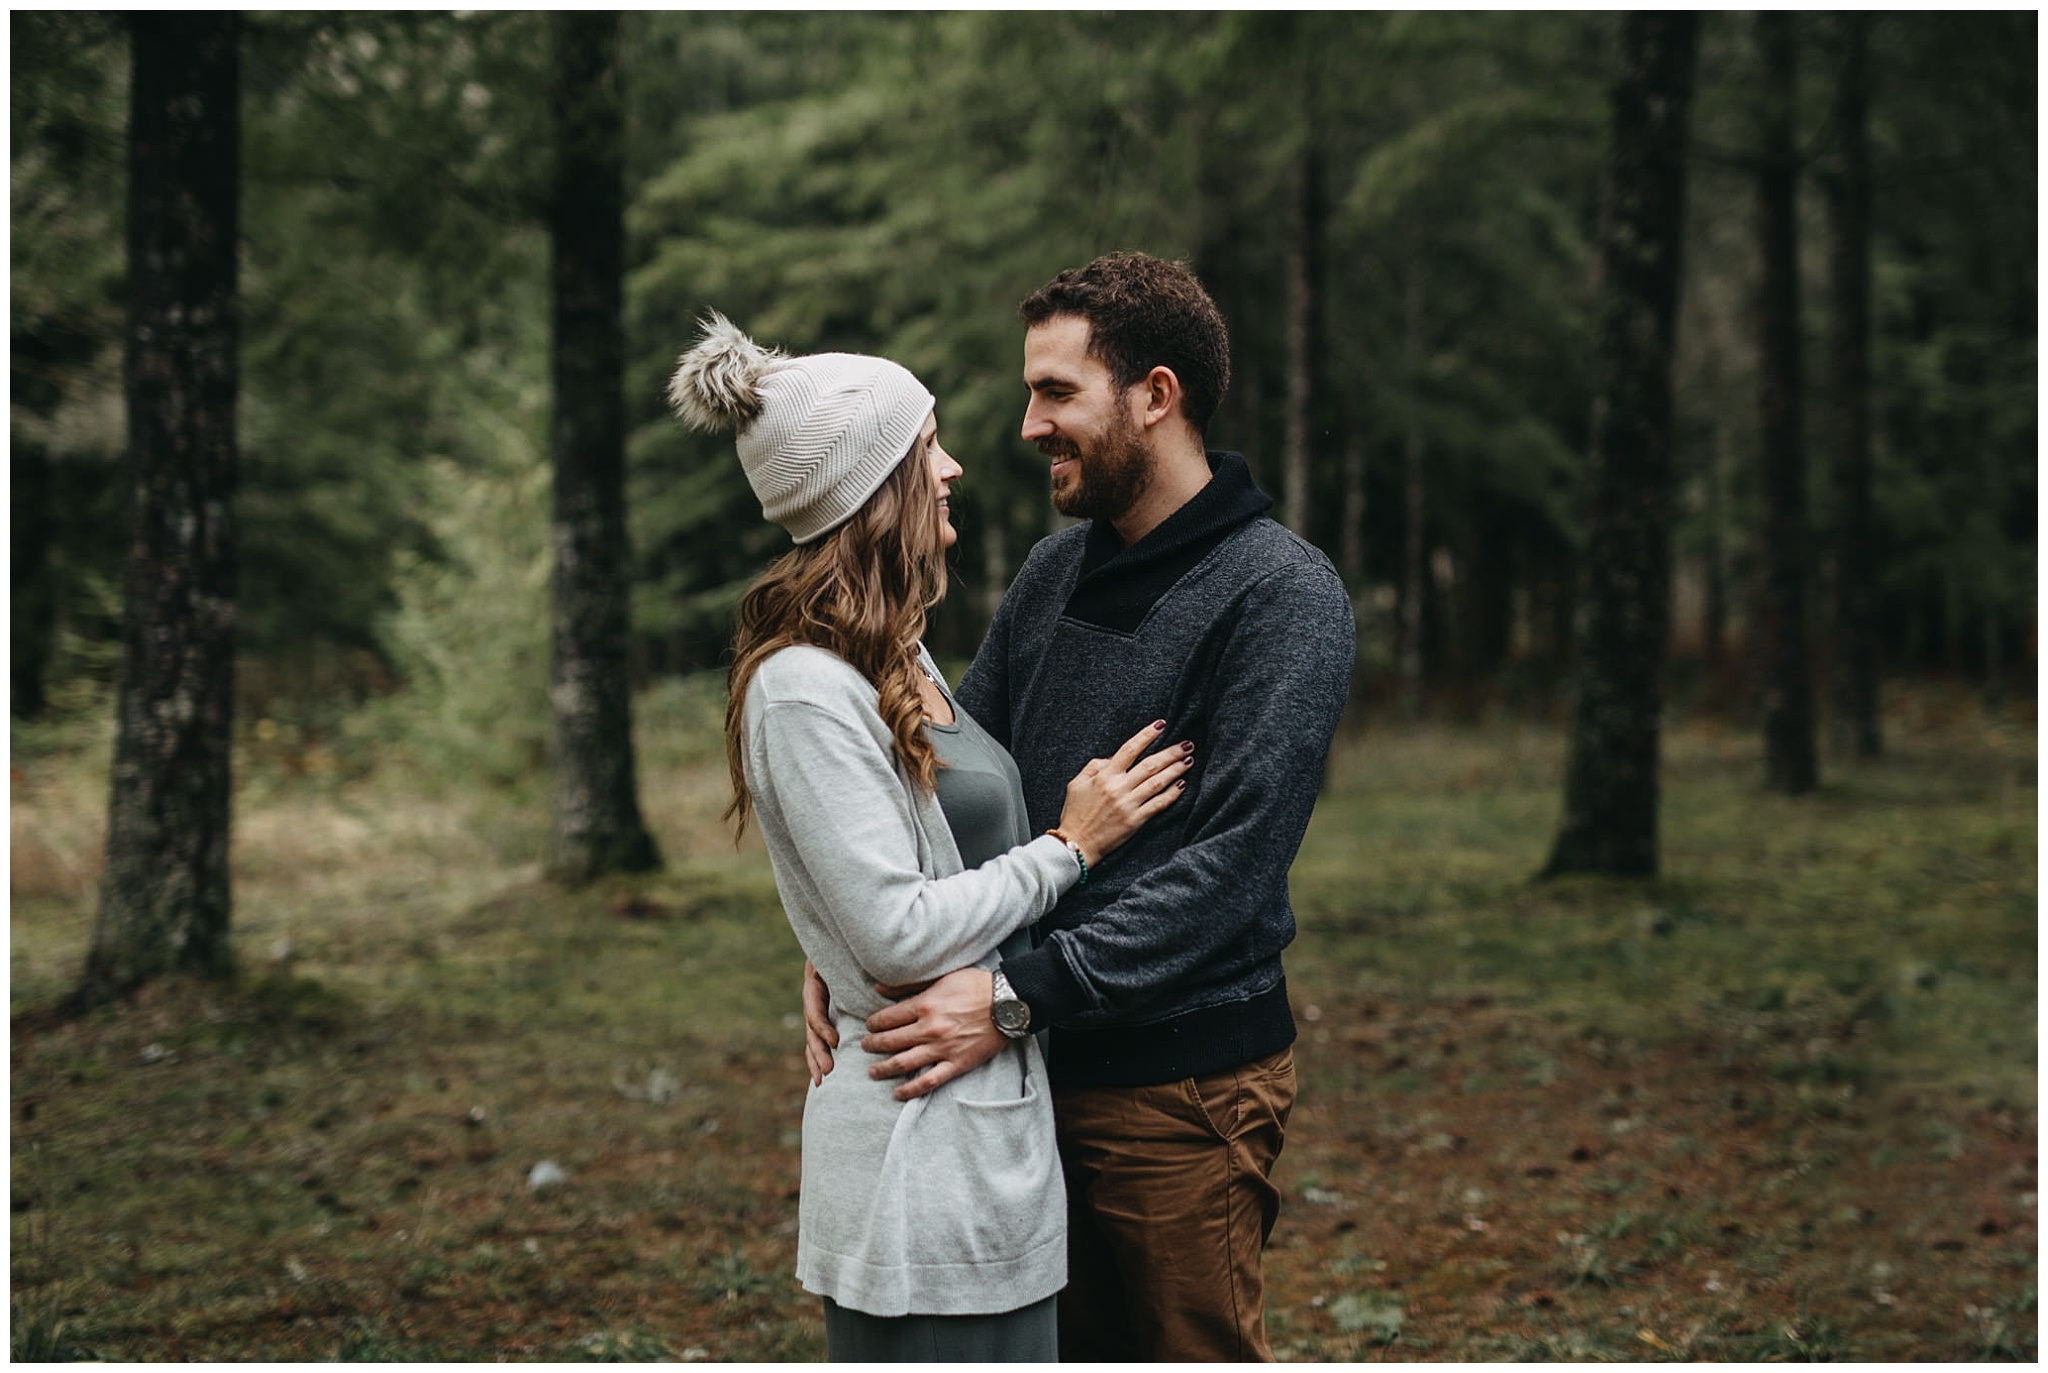 couple hug in forest chilliwack family photos